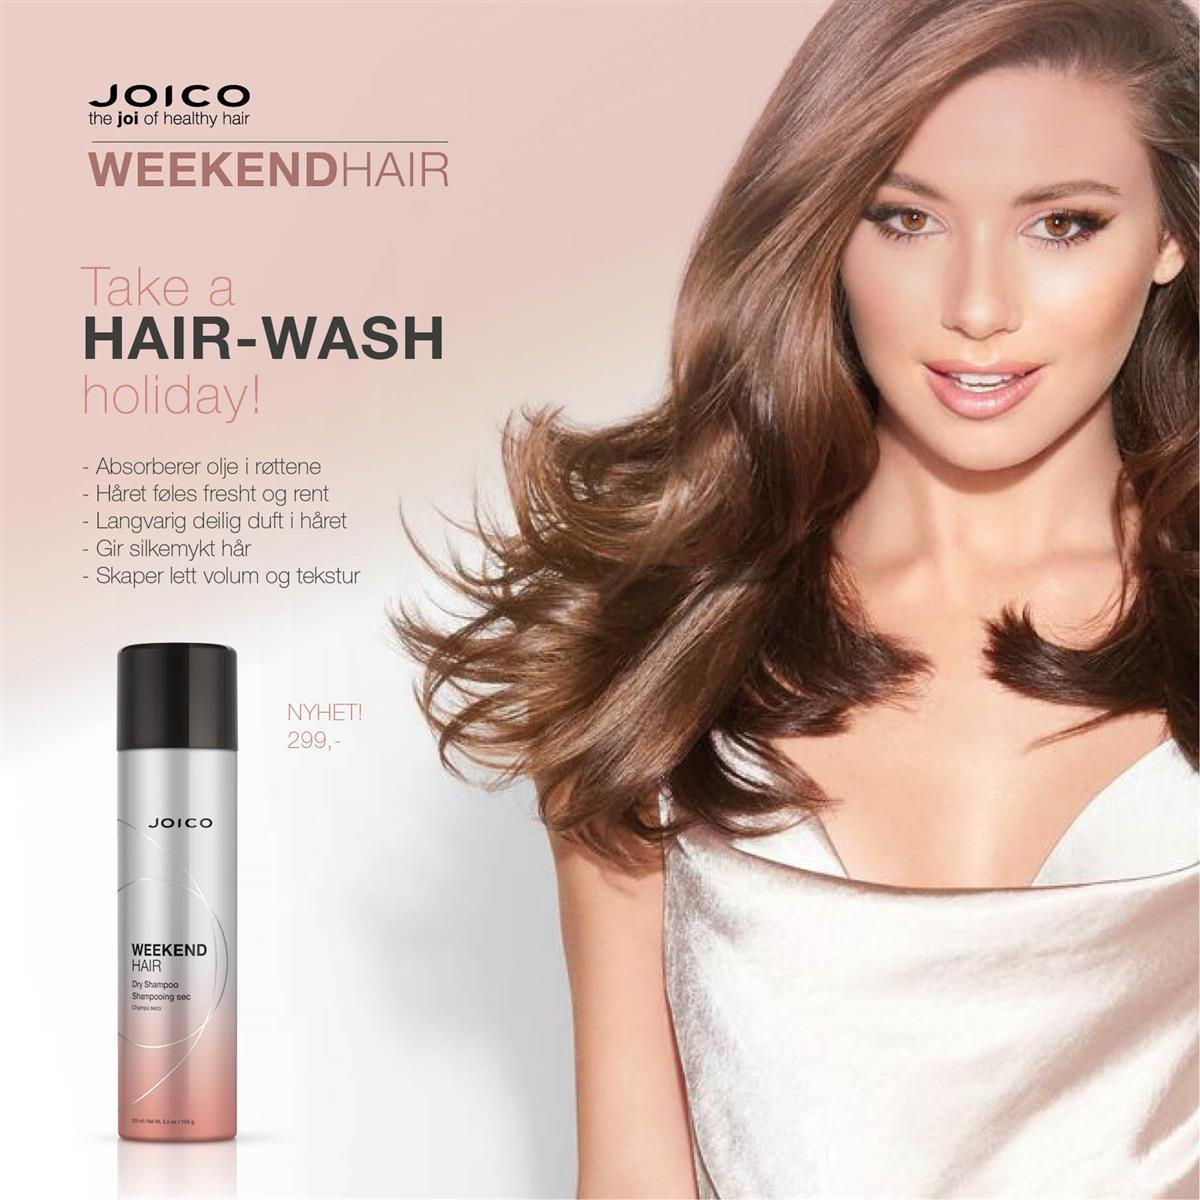 JOICO WEEKEND HAIR - KAMPANJE NOVEMBER 2019